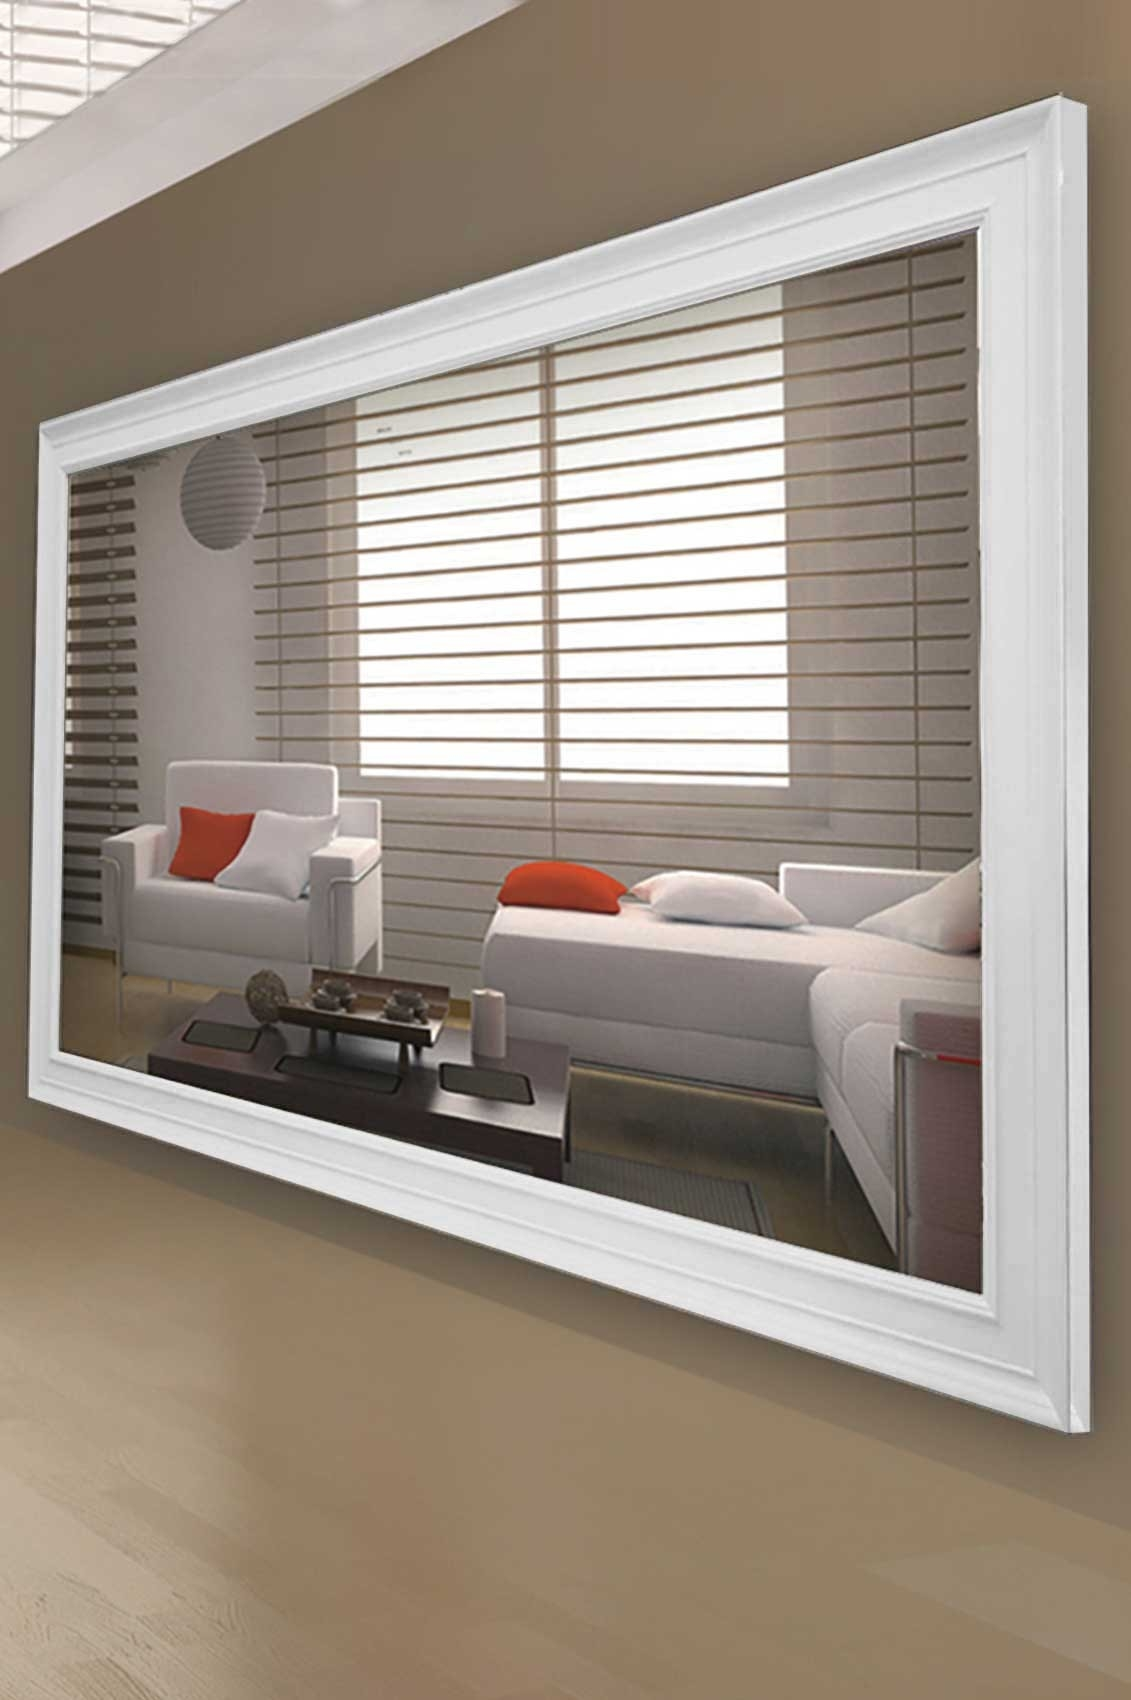 Download Large Designer Wall Mirrors Sandiegoduathlon Intended For Modern Large Mirrors (Image 6 of 15)